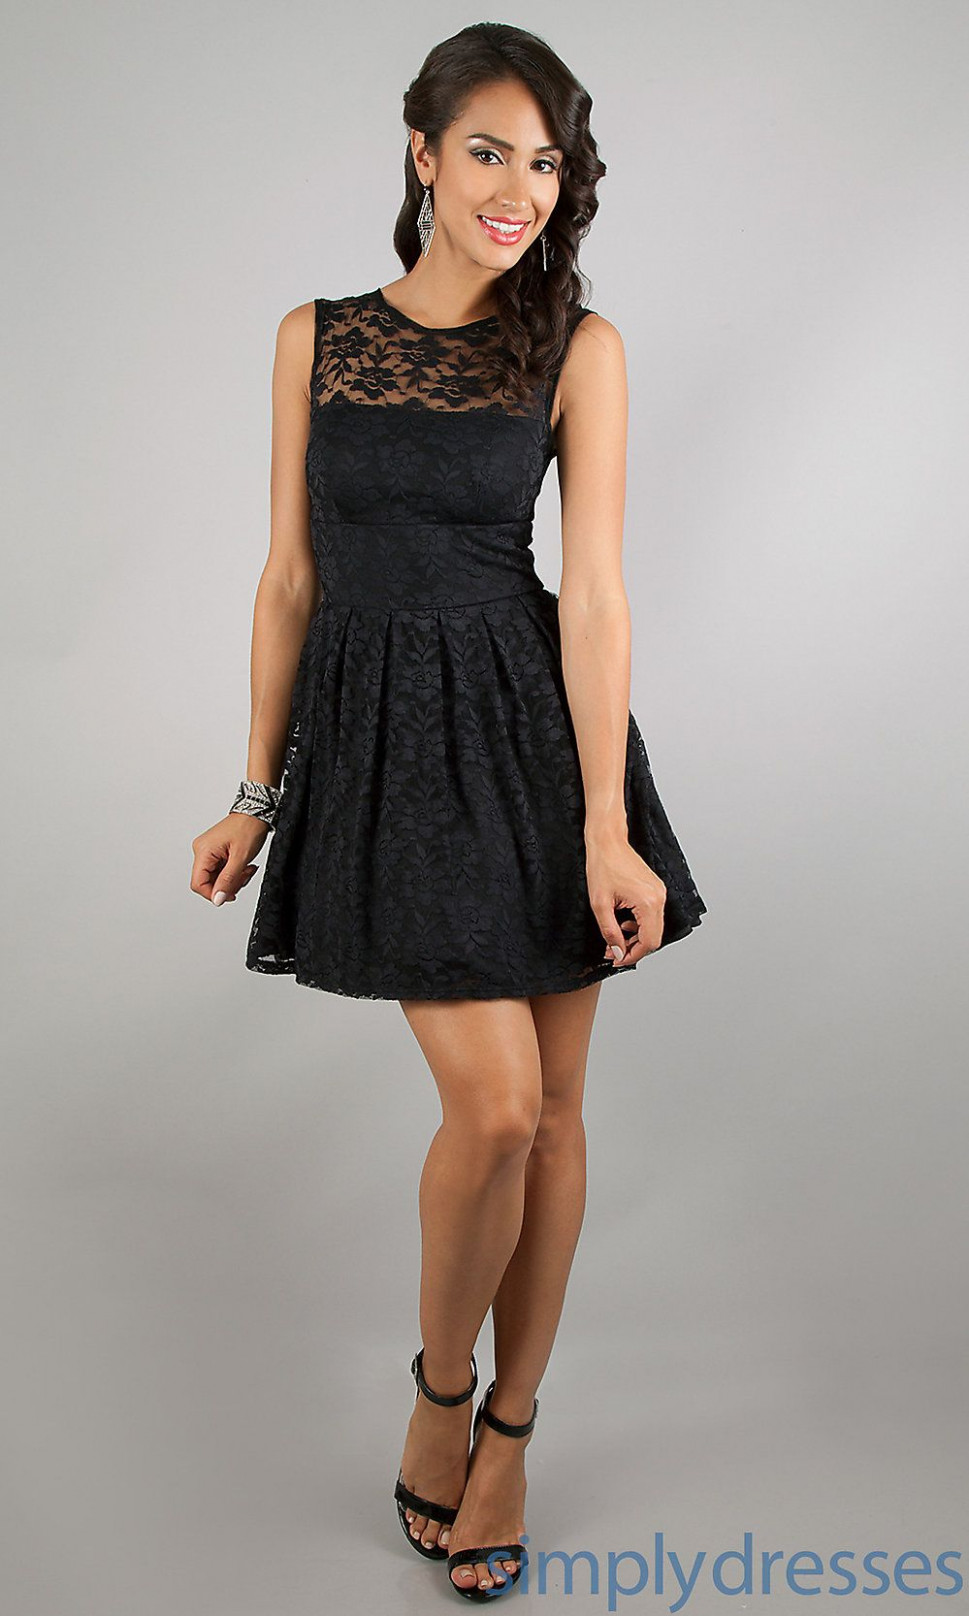 awesome Trends for classy dresses tumblr - wonderful Dresses